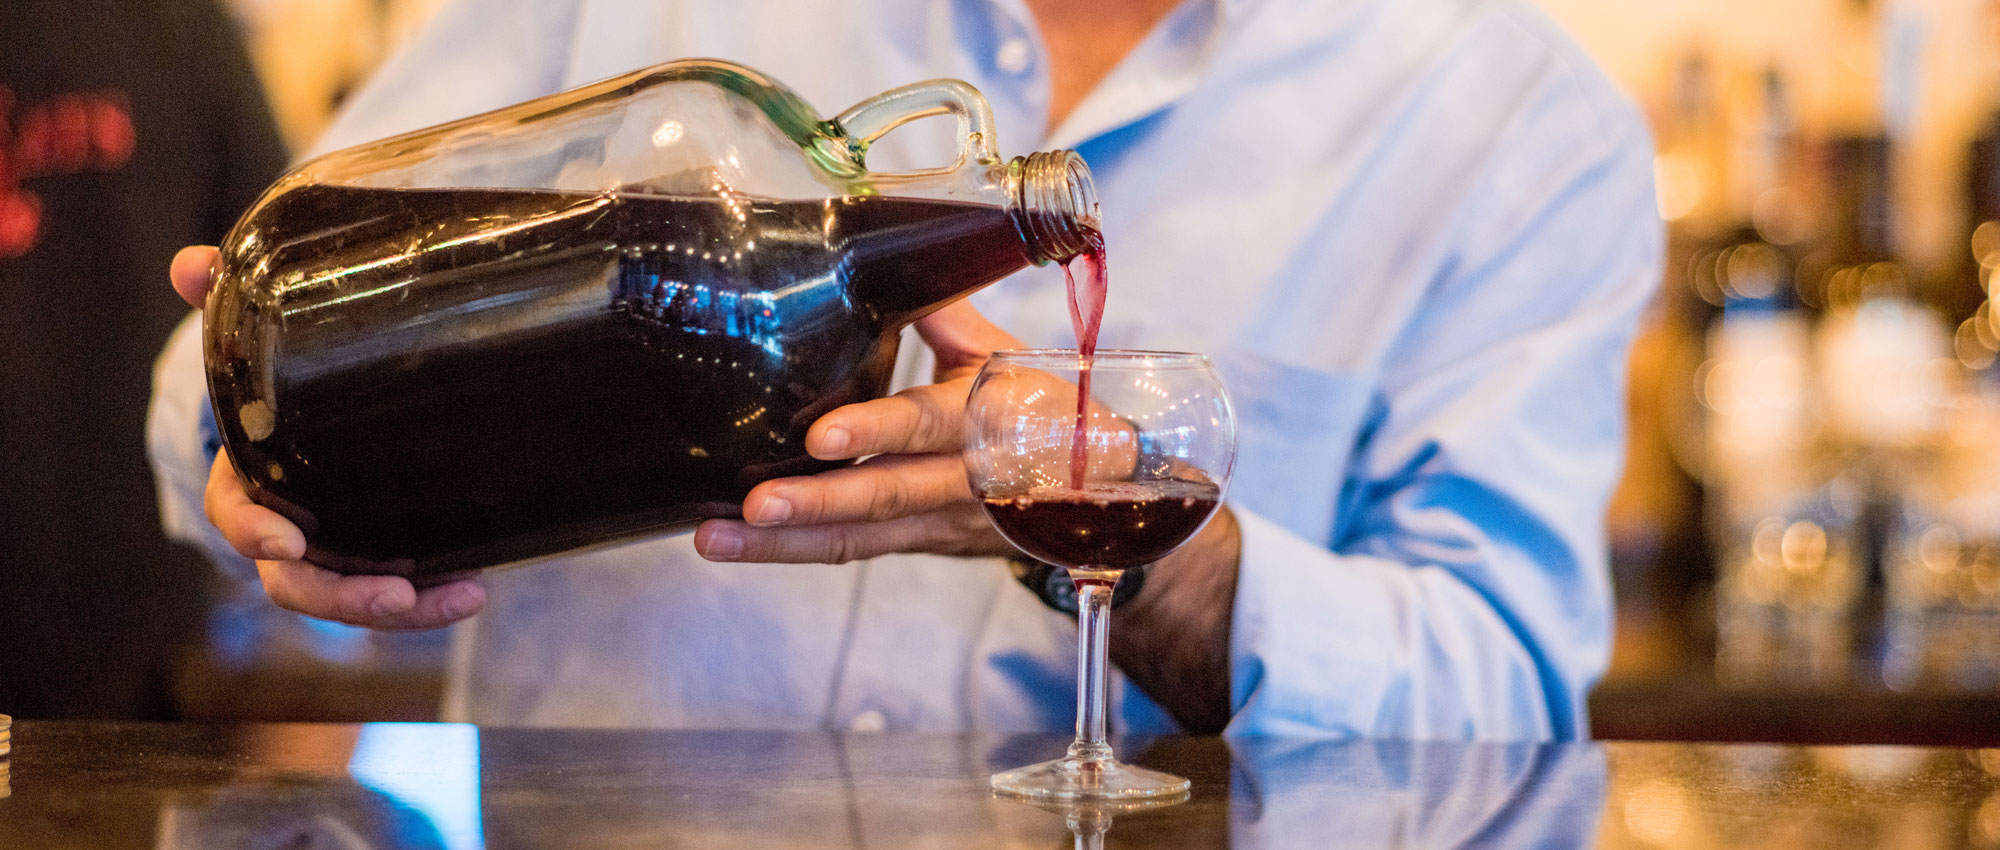 Man pouring wine from a clear glass jug